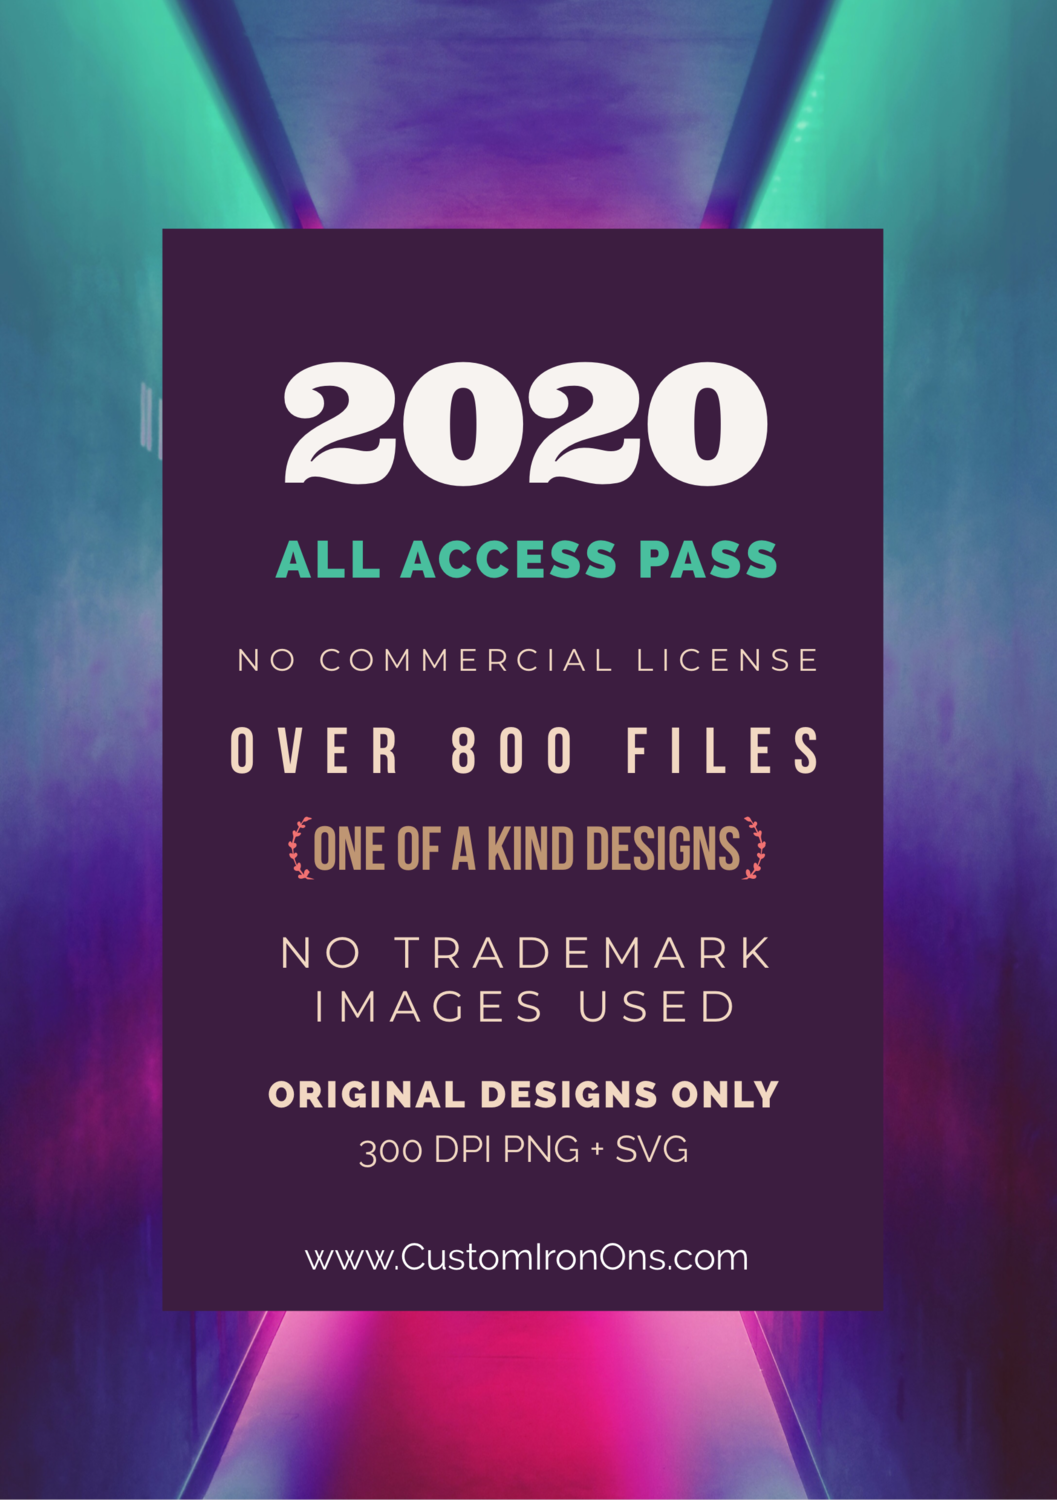 2020 ALL ACCESS PASS - YEARLY